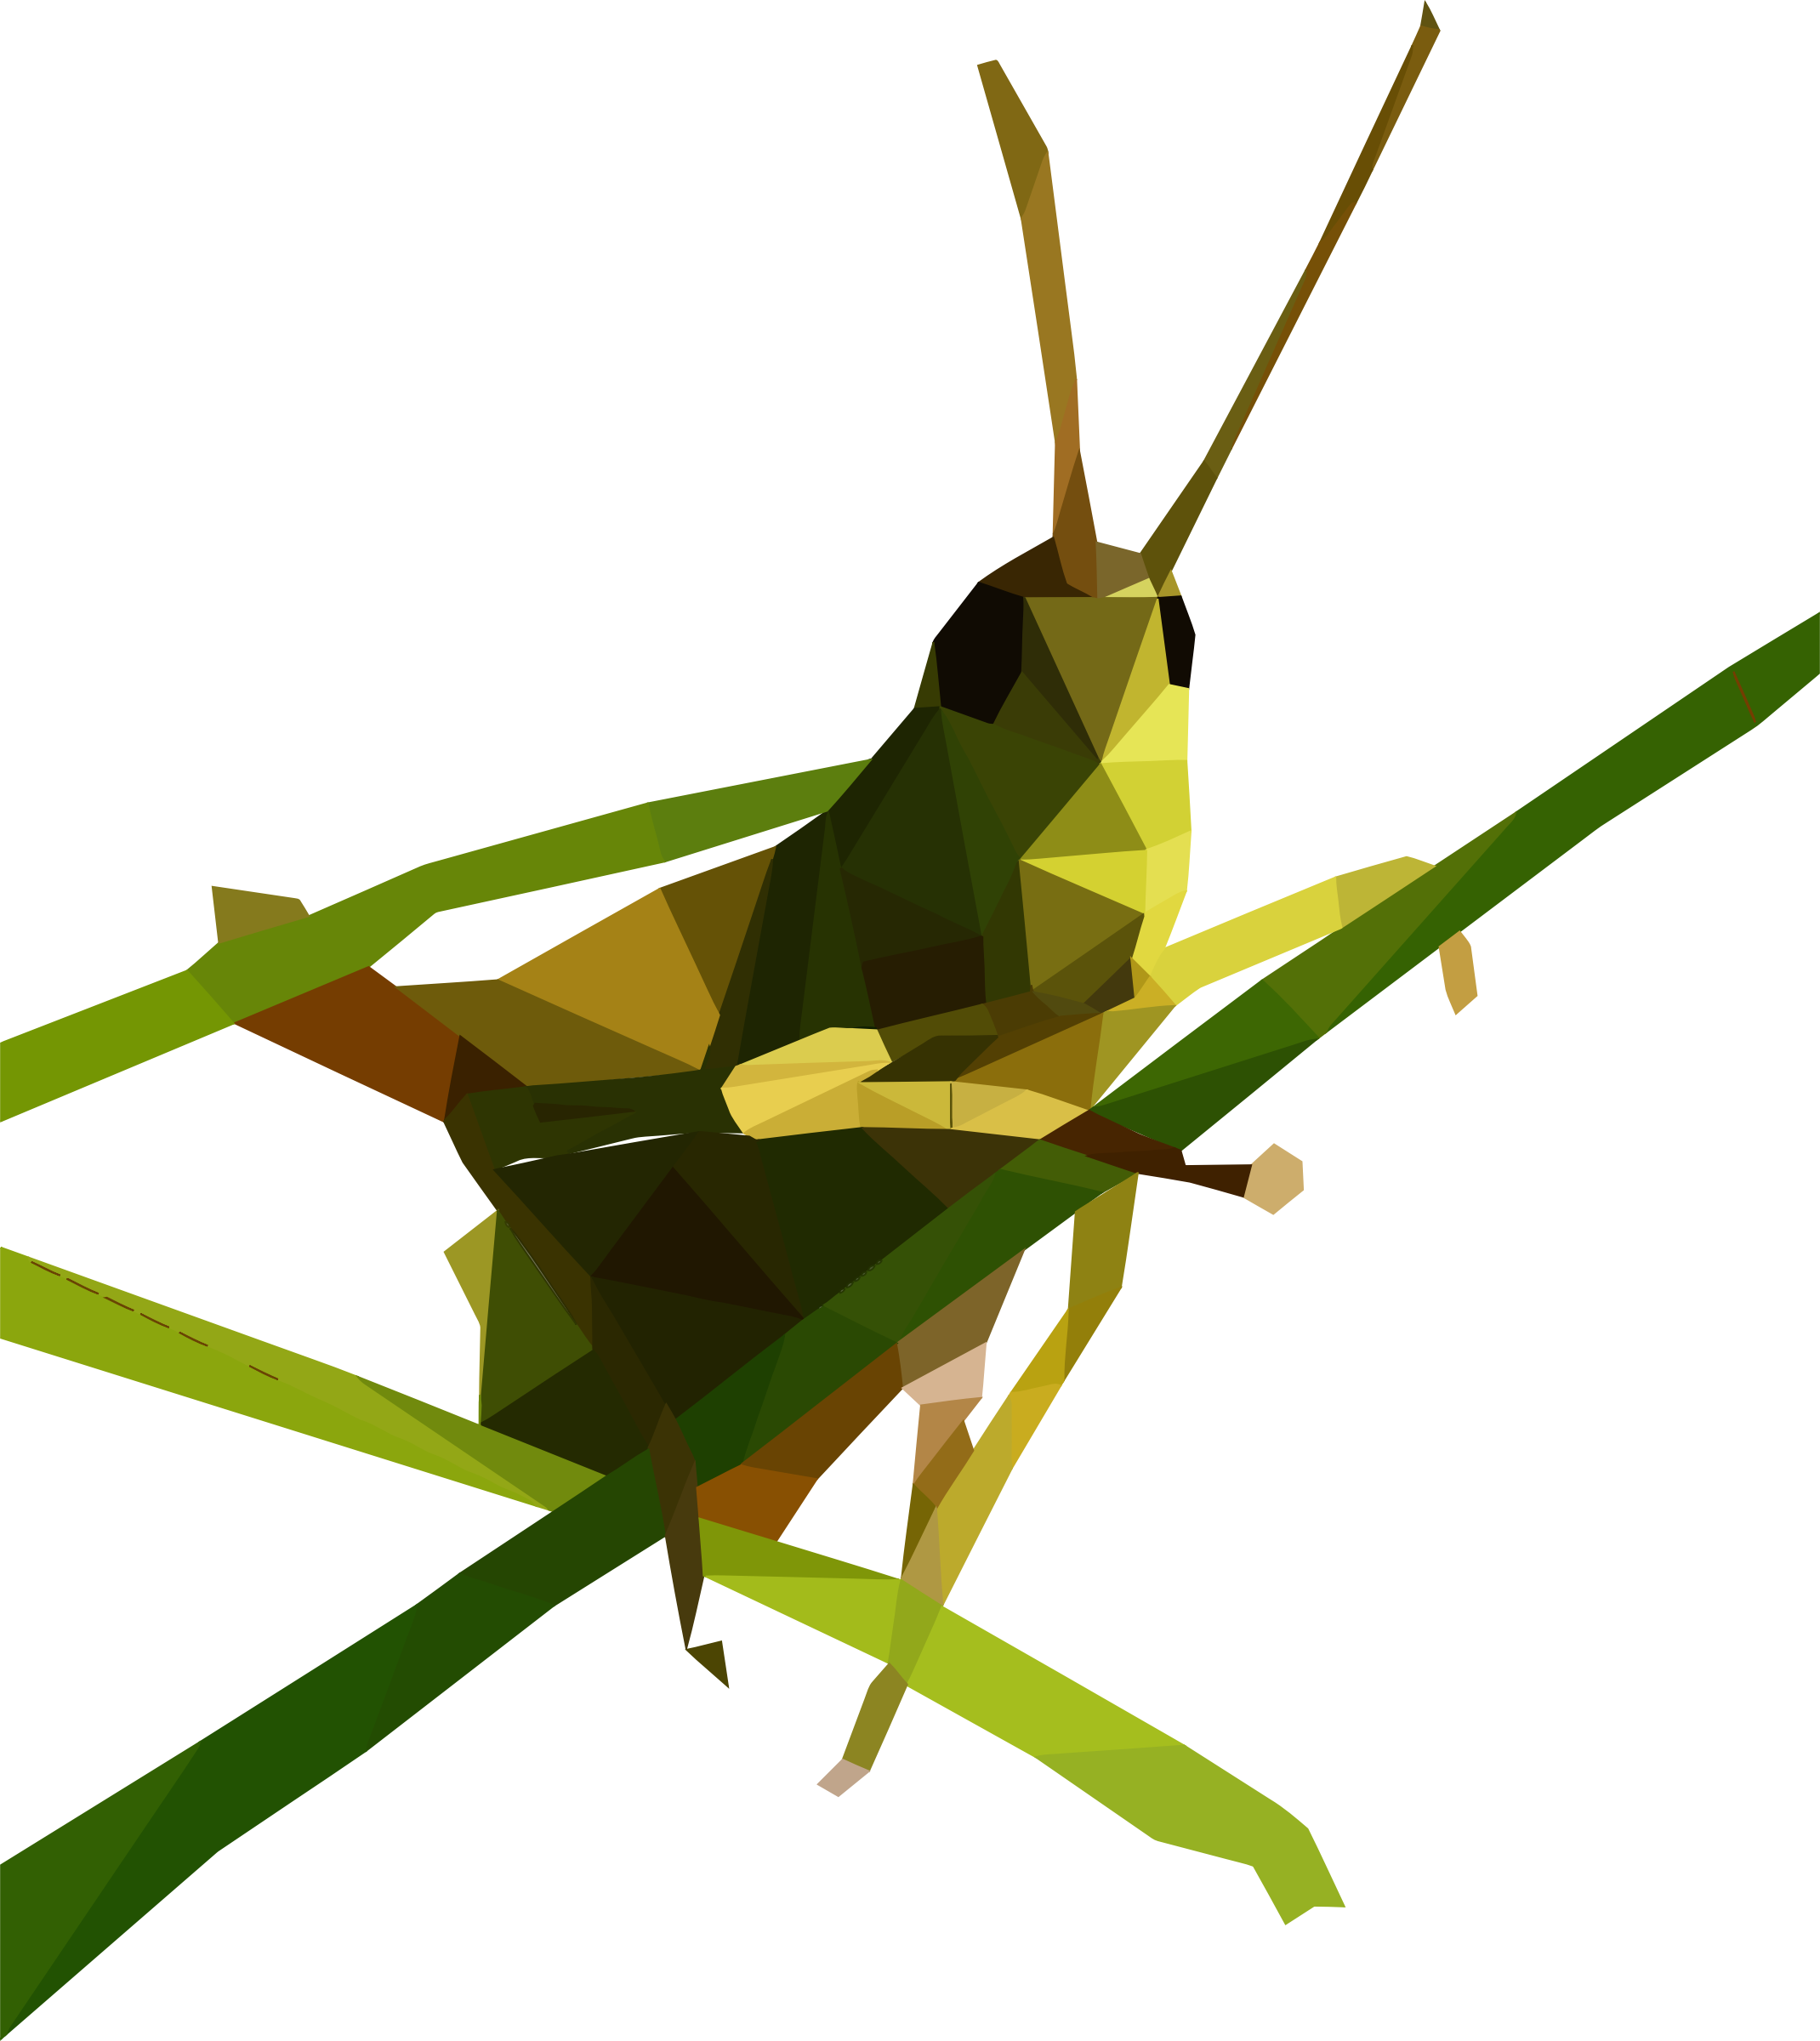 Grasshopper Free Download PNG Image